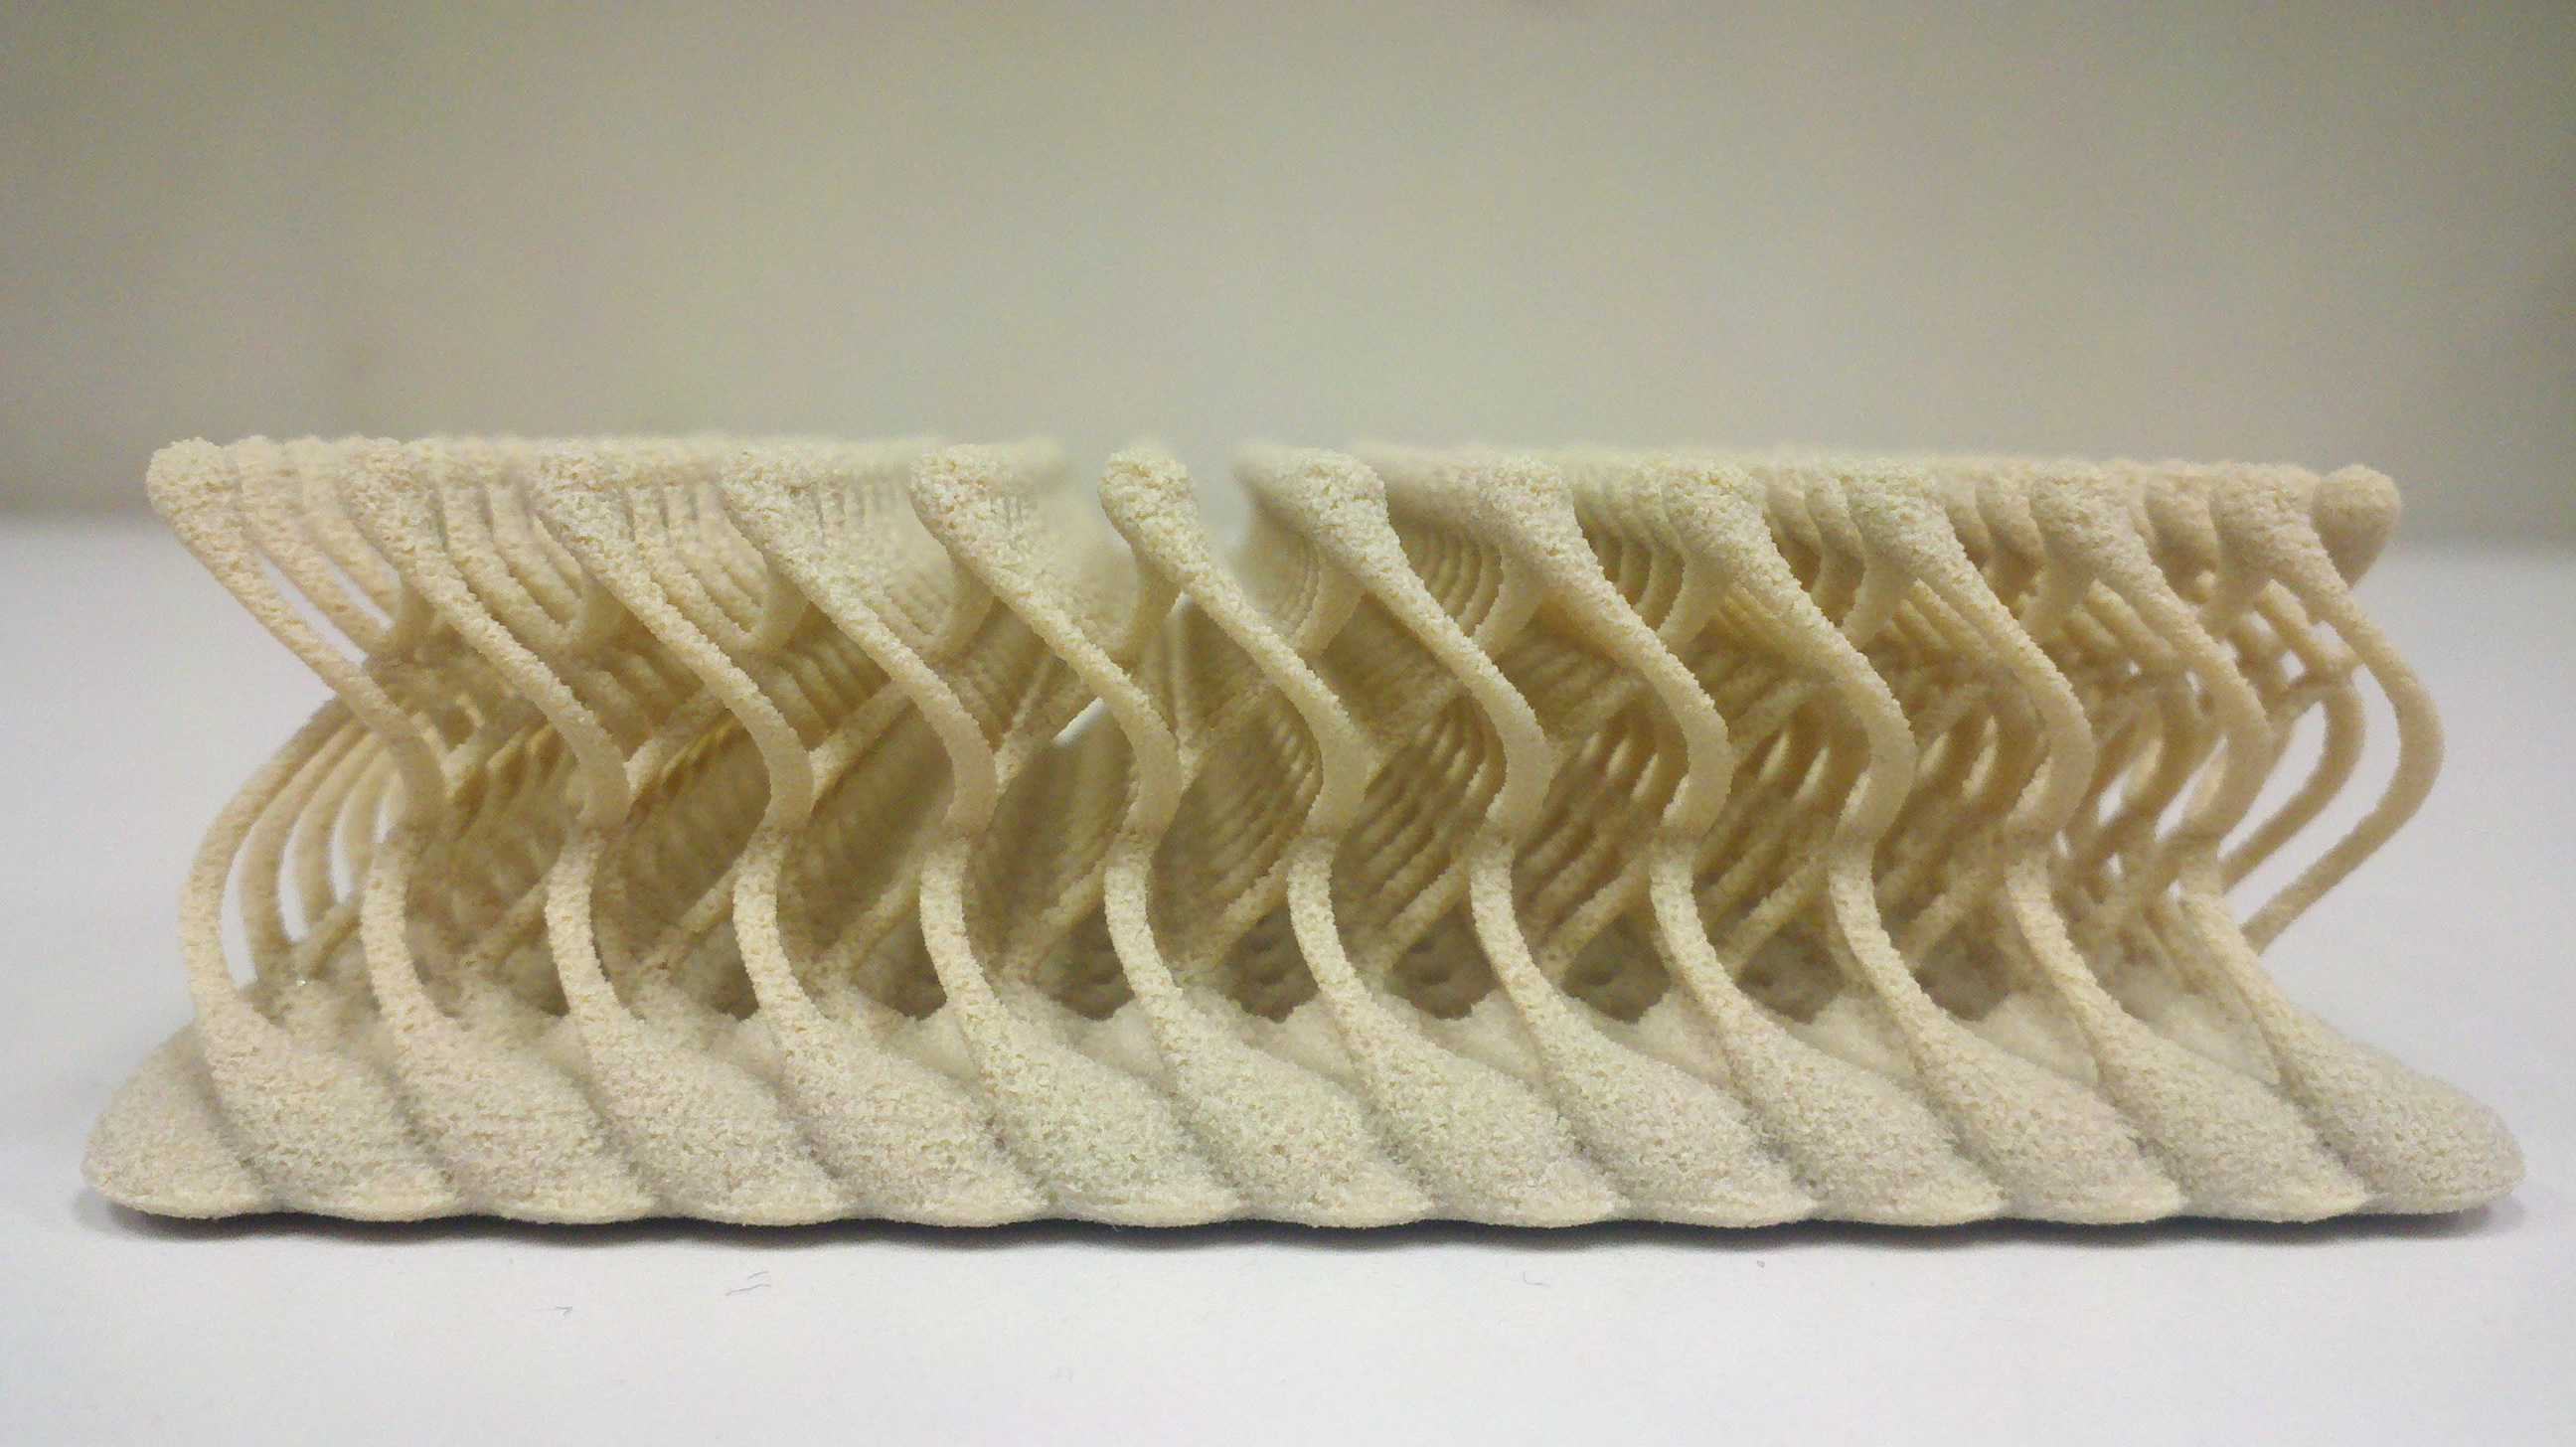 OPM launches OXFAB(R) 3D printing technology for aerospace and industrial applications